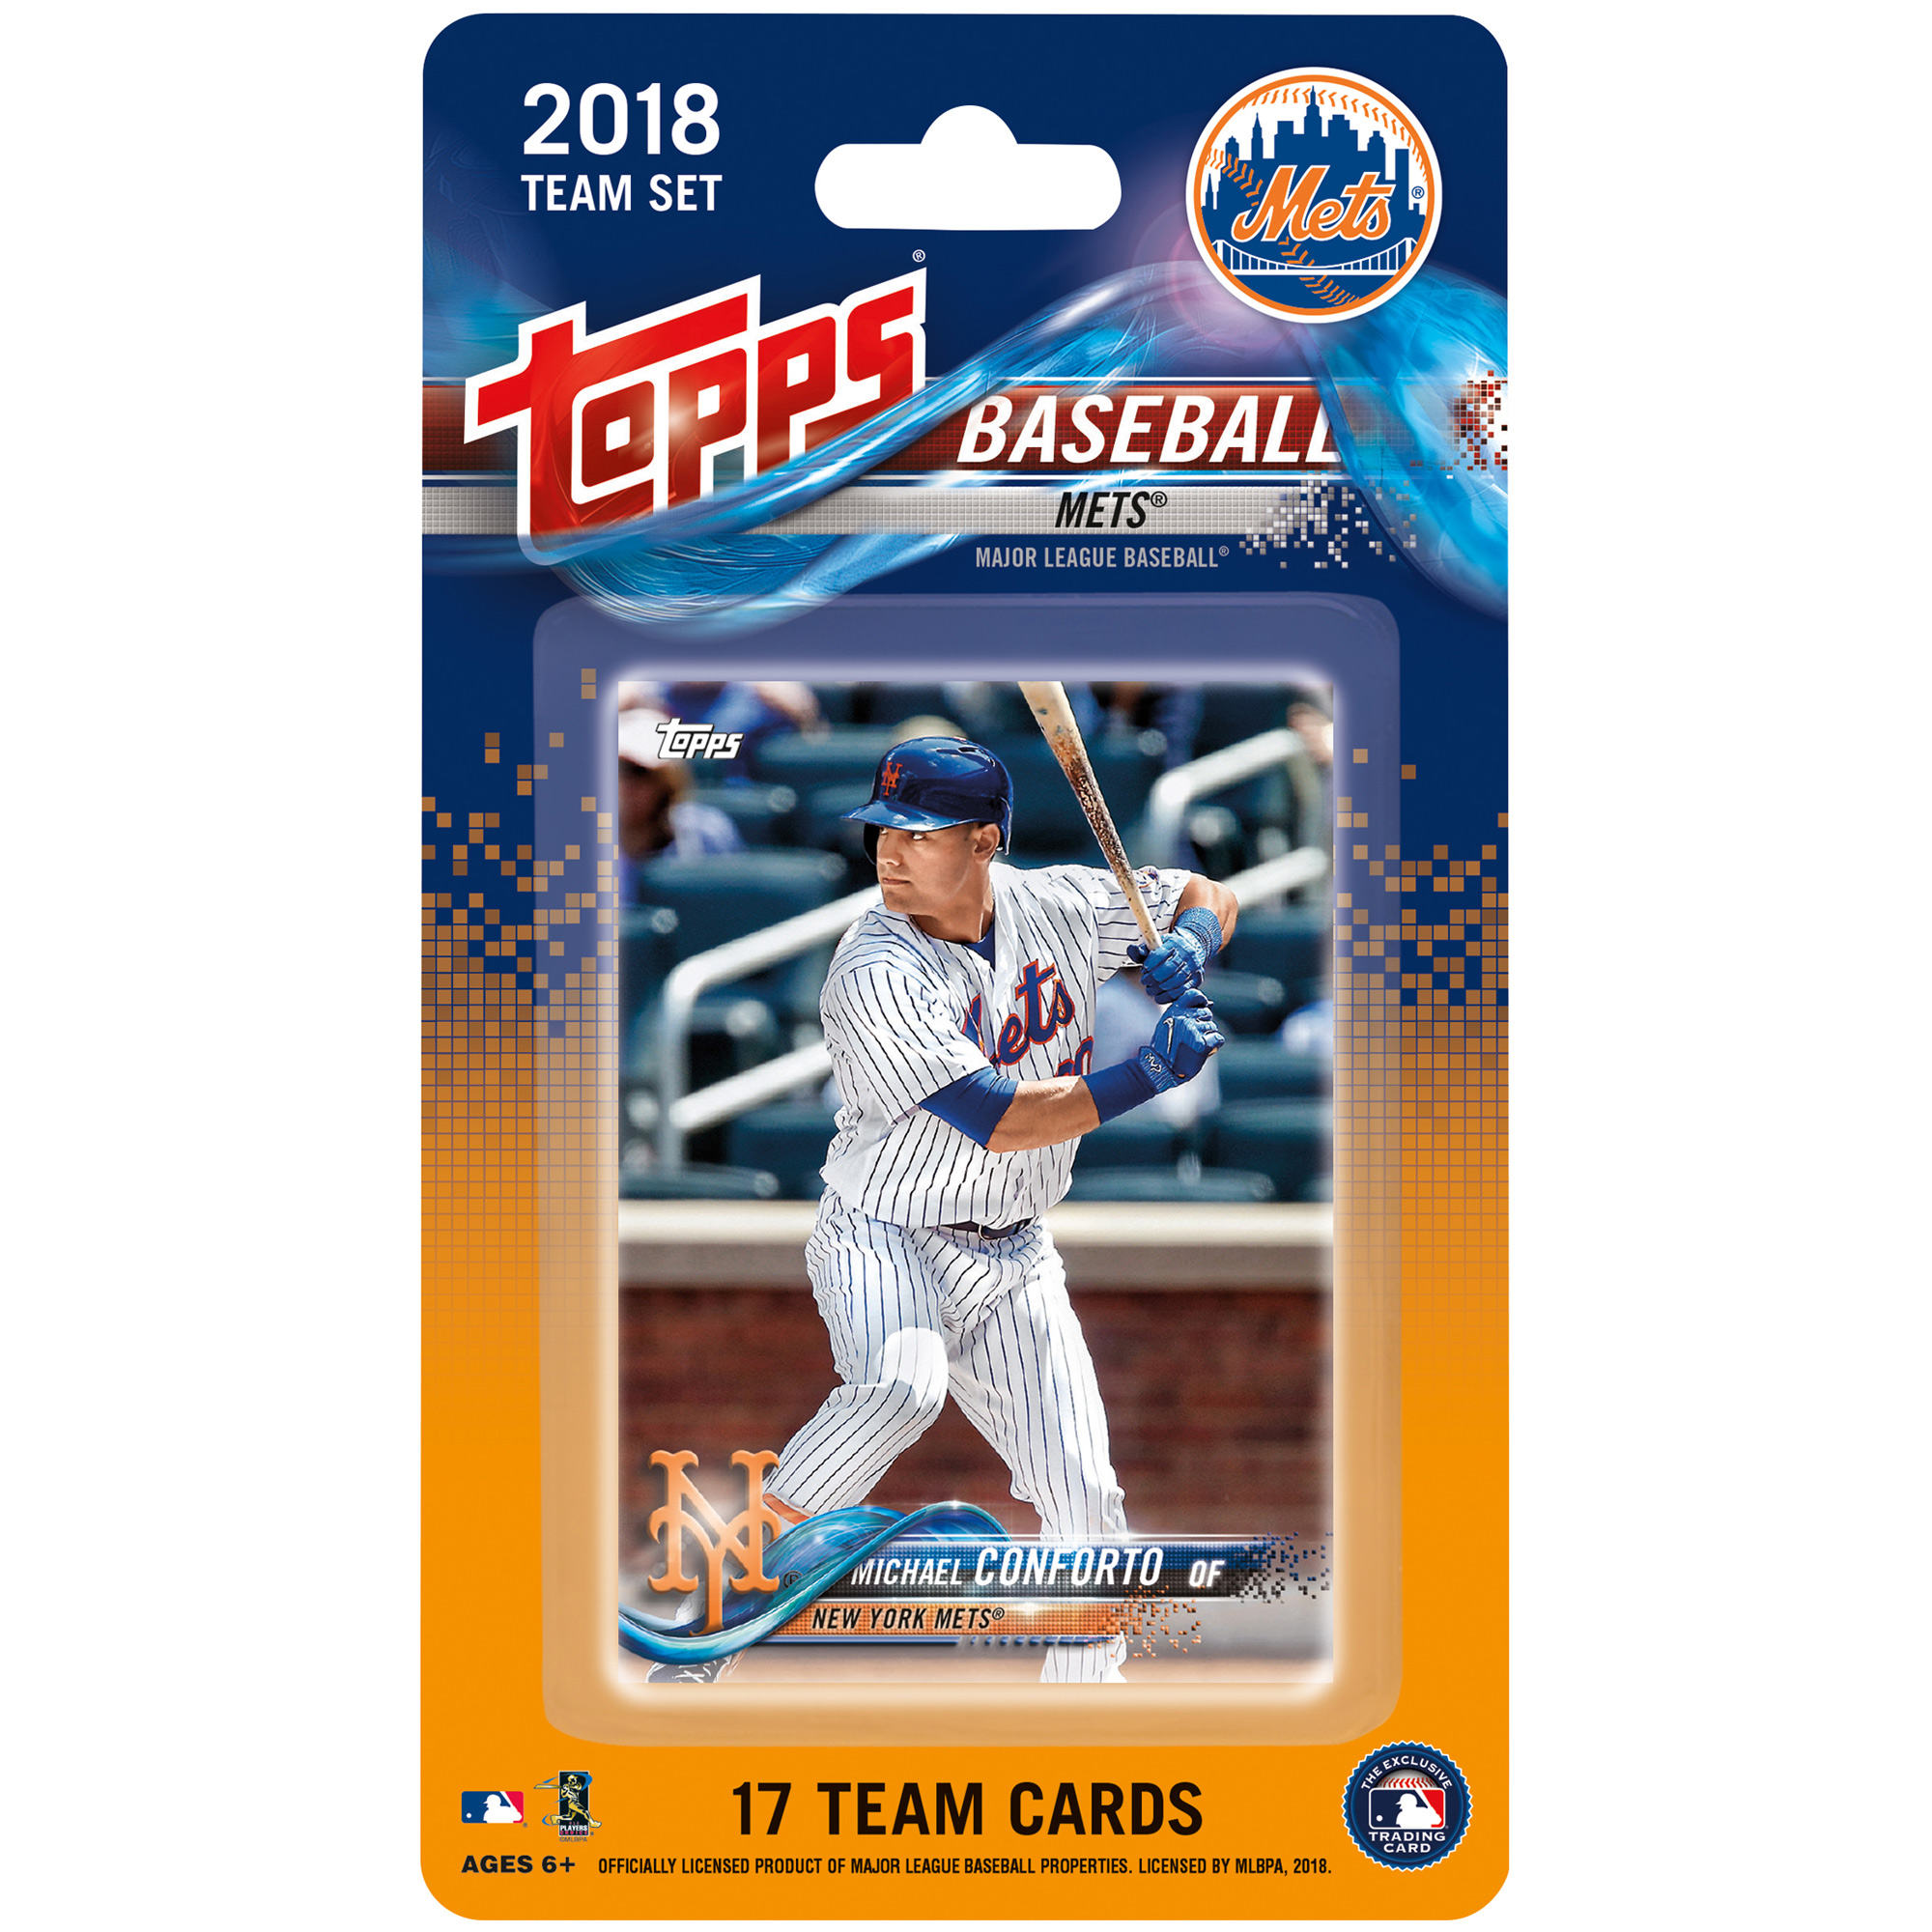 New York Mets 2018 Team Set Trading Cards - No Size